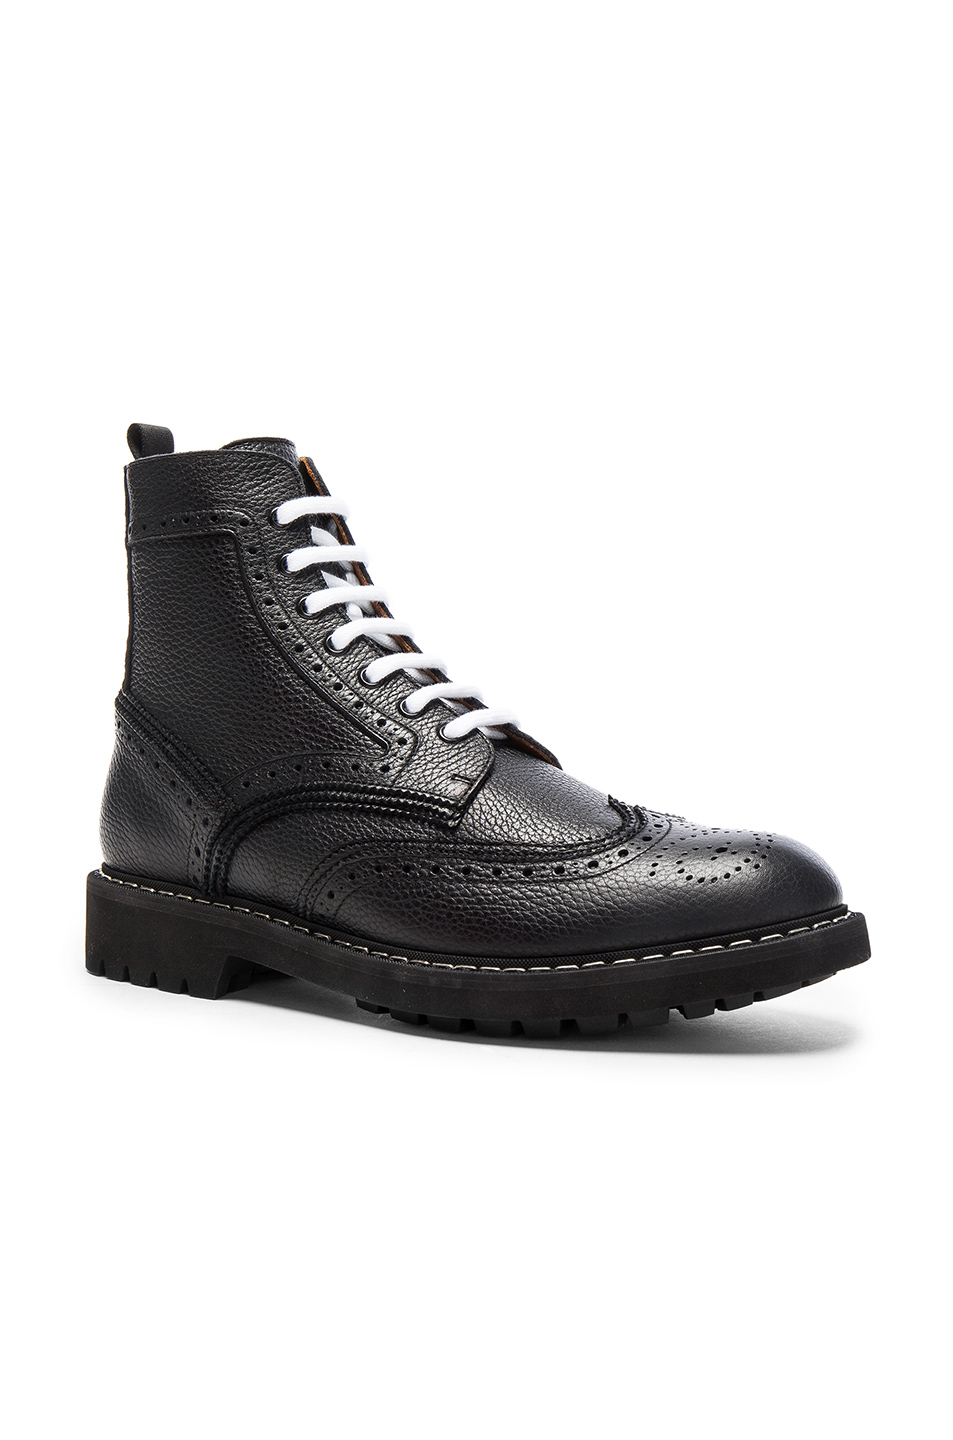 Givenchy Leather Wingtip Boots in Black